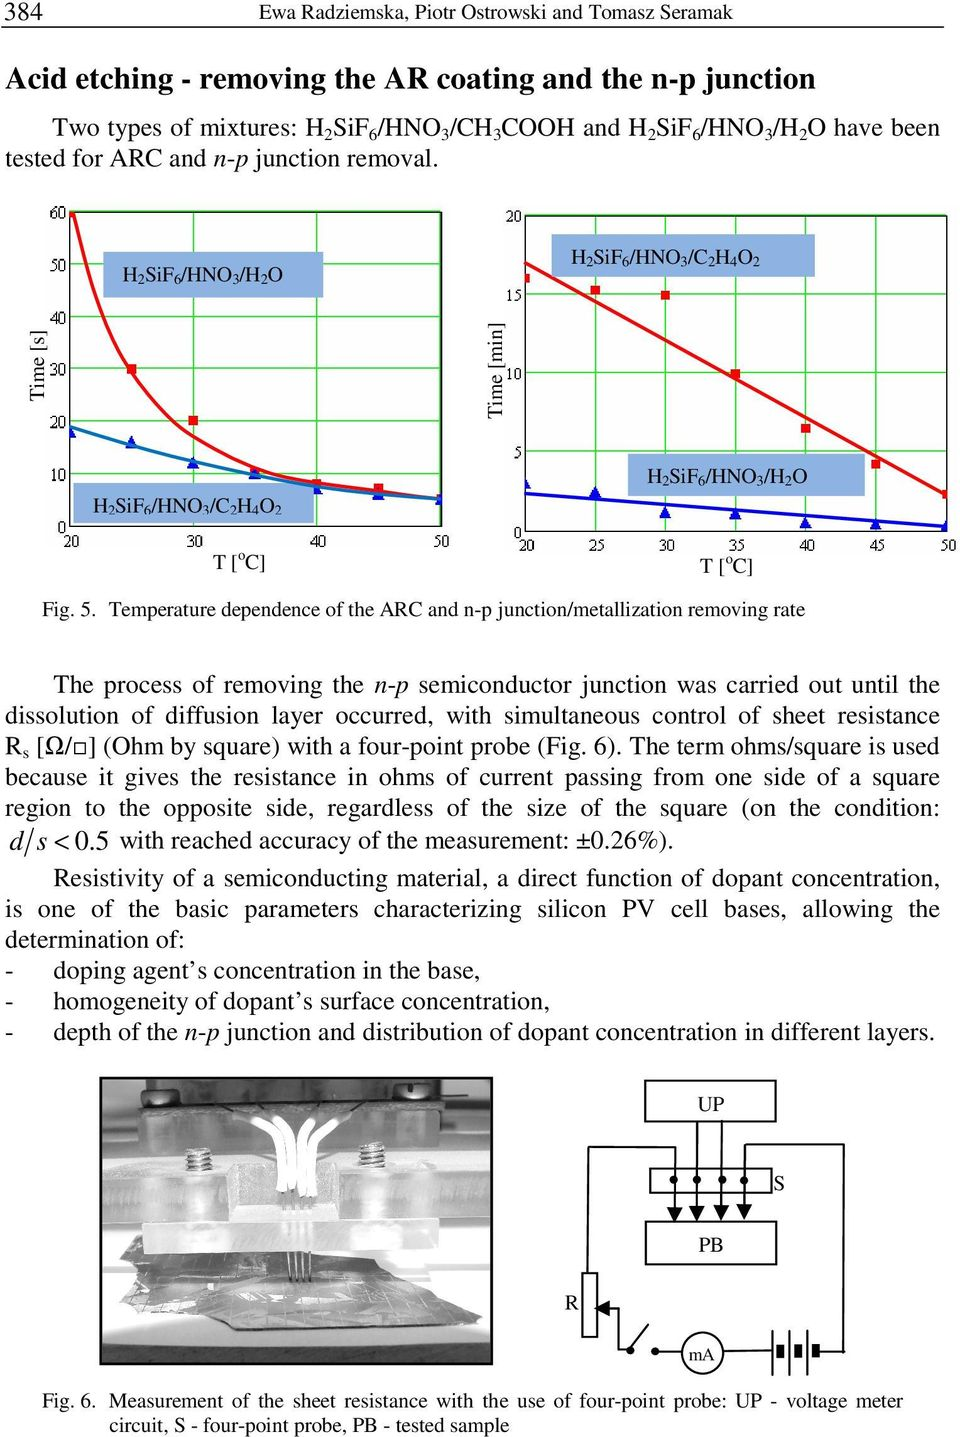 Temperature dependence of the ARC and n-p junction/metallization removing rate The process of removing the n-p semiconductor junction was carried out until the dissolution of diffusion layer